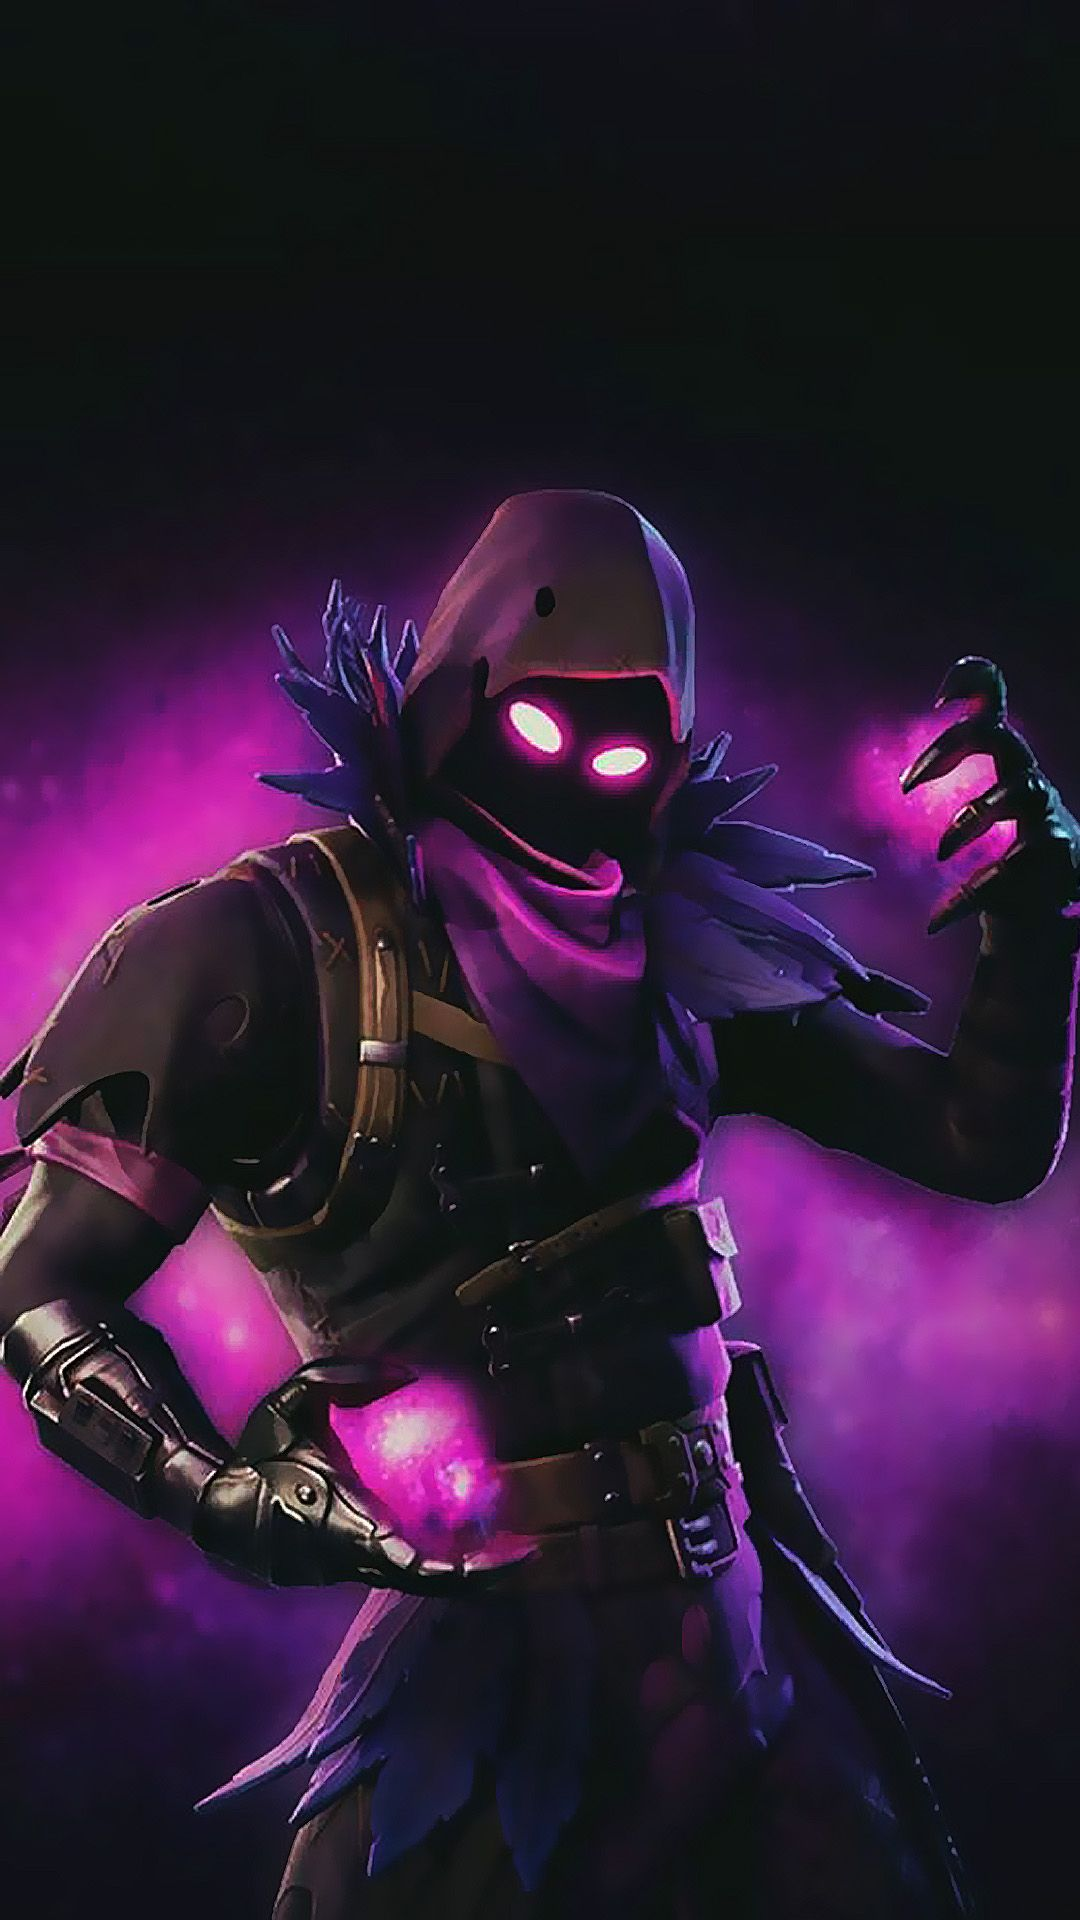 Fortnite Full Hd Phone Vertical Wallpaper Raven Pictures Best Gaming Wallpapers Gaming Wallpapers